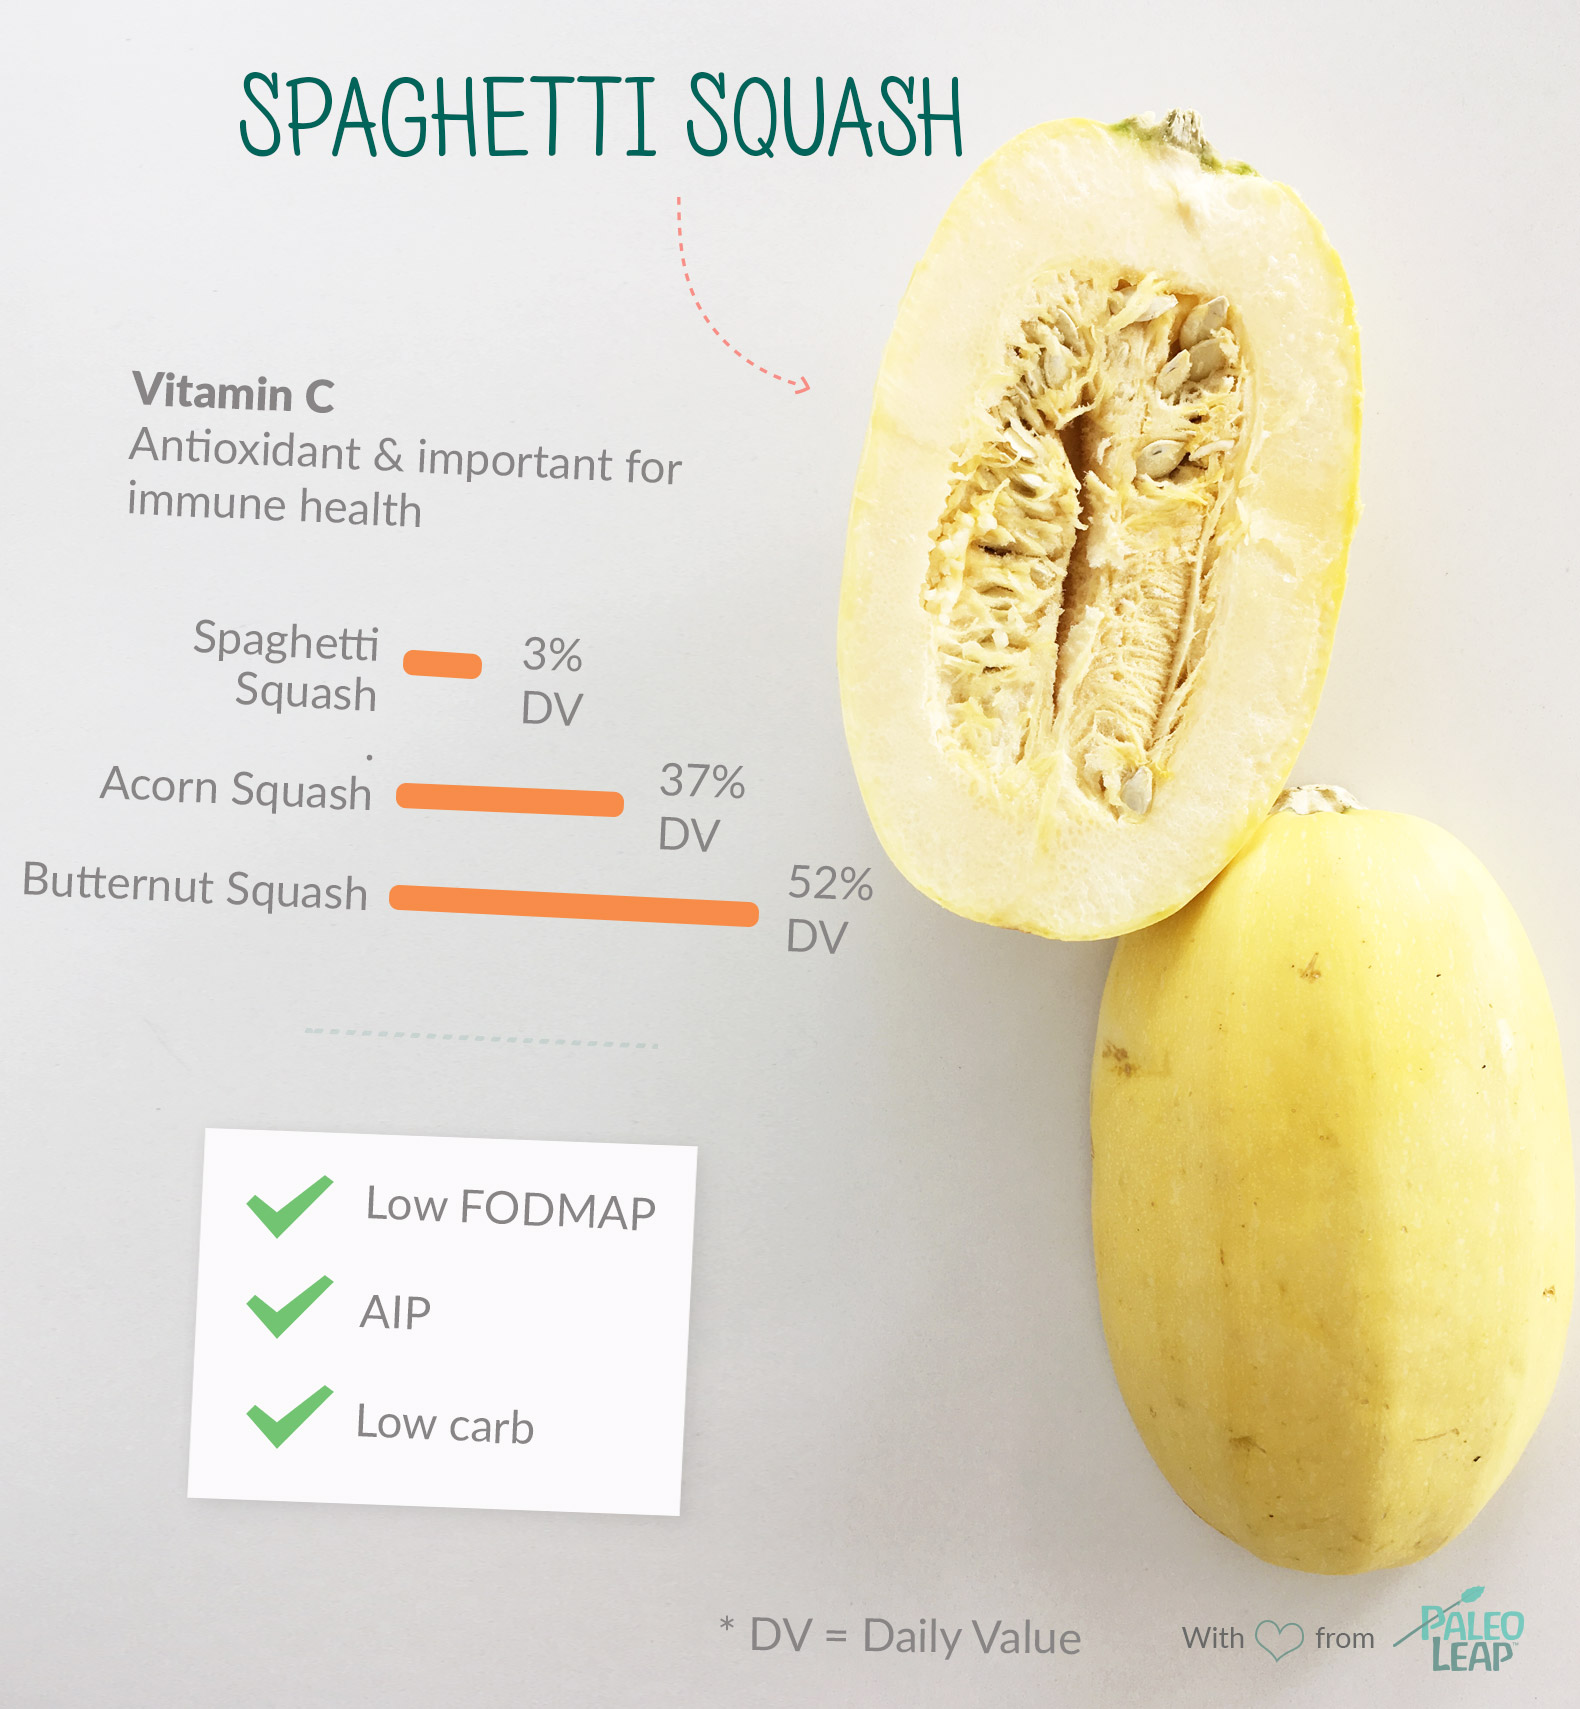 Spaghetti squash highlights